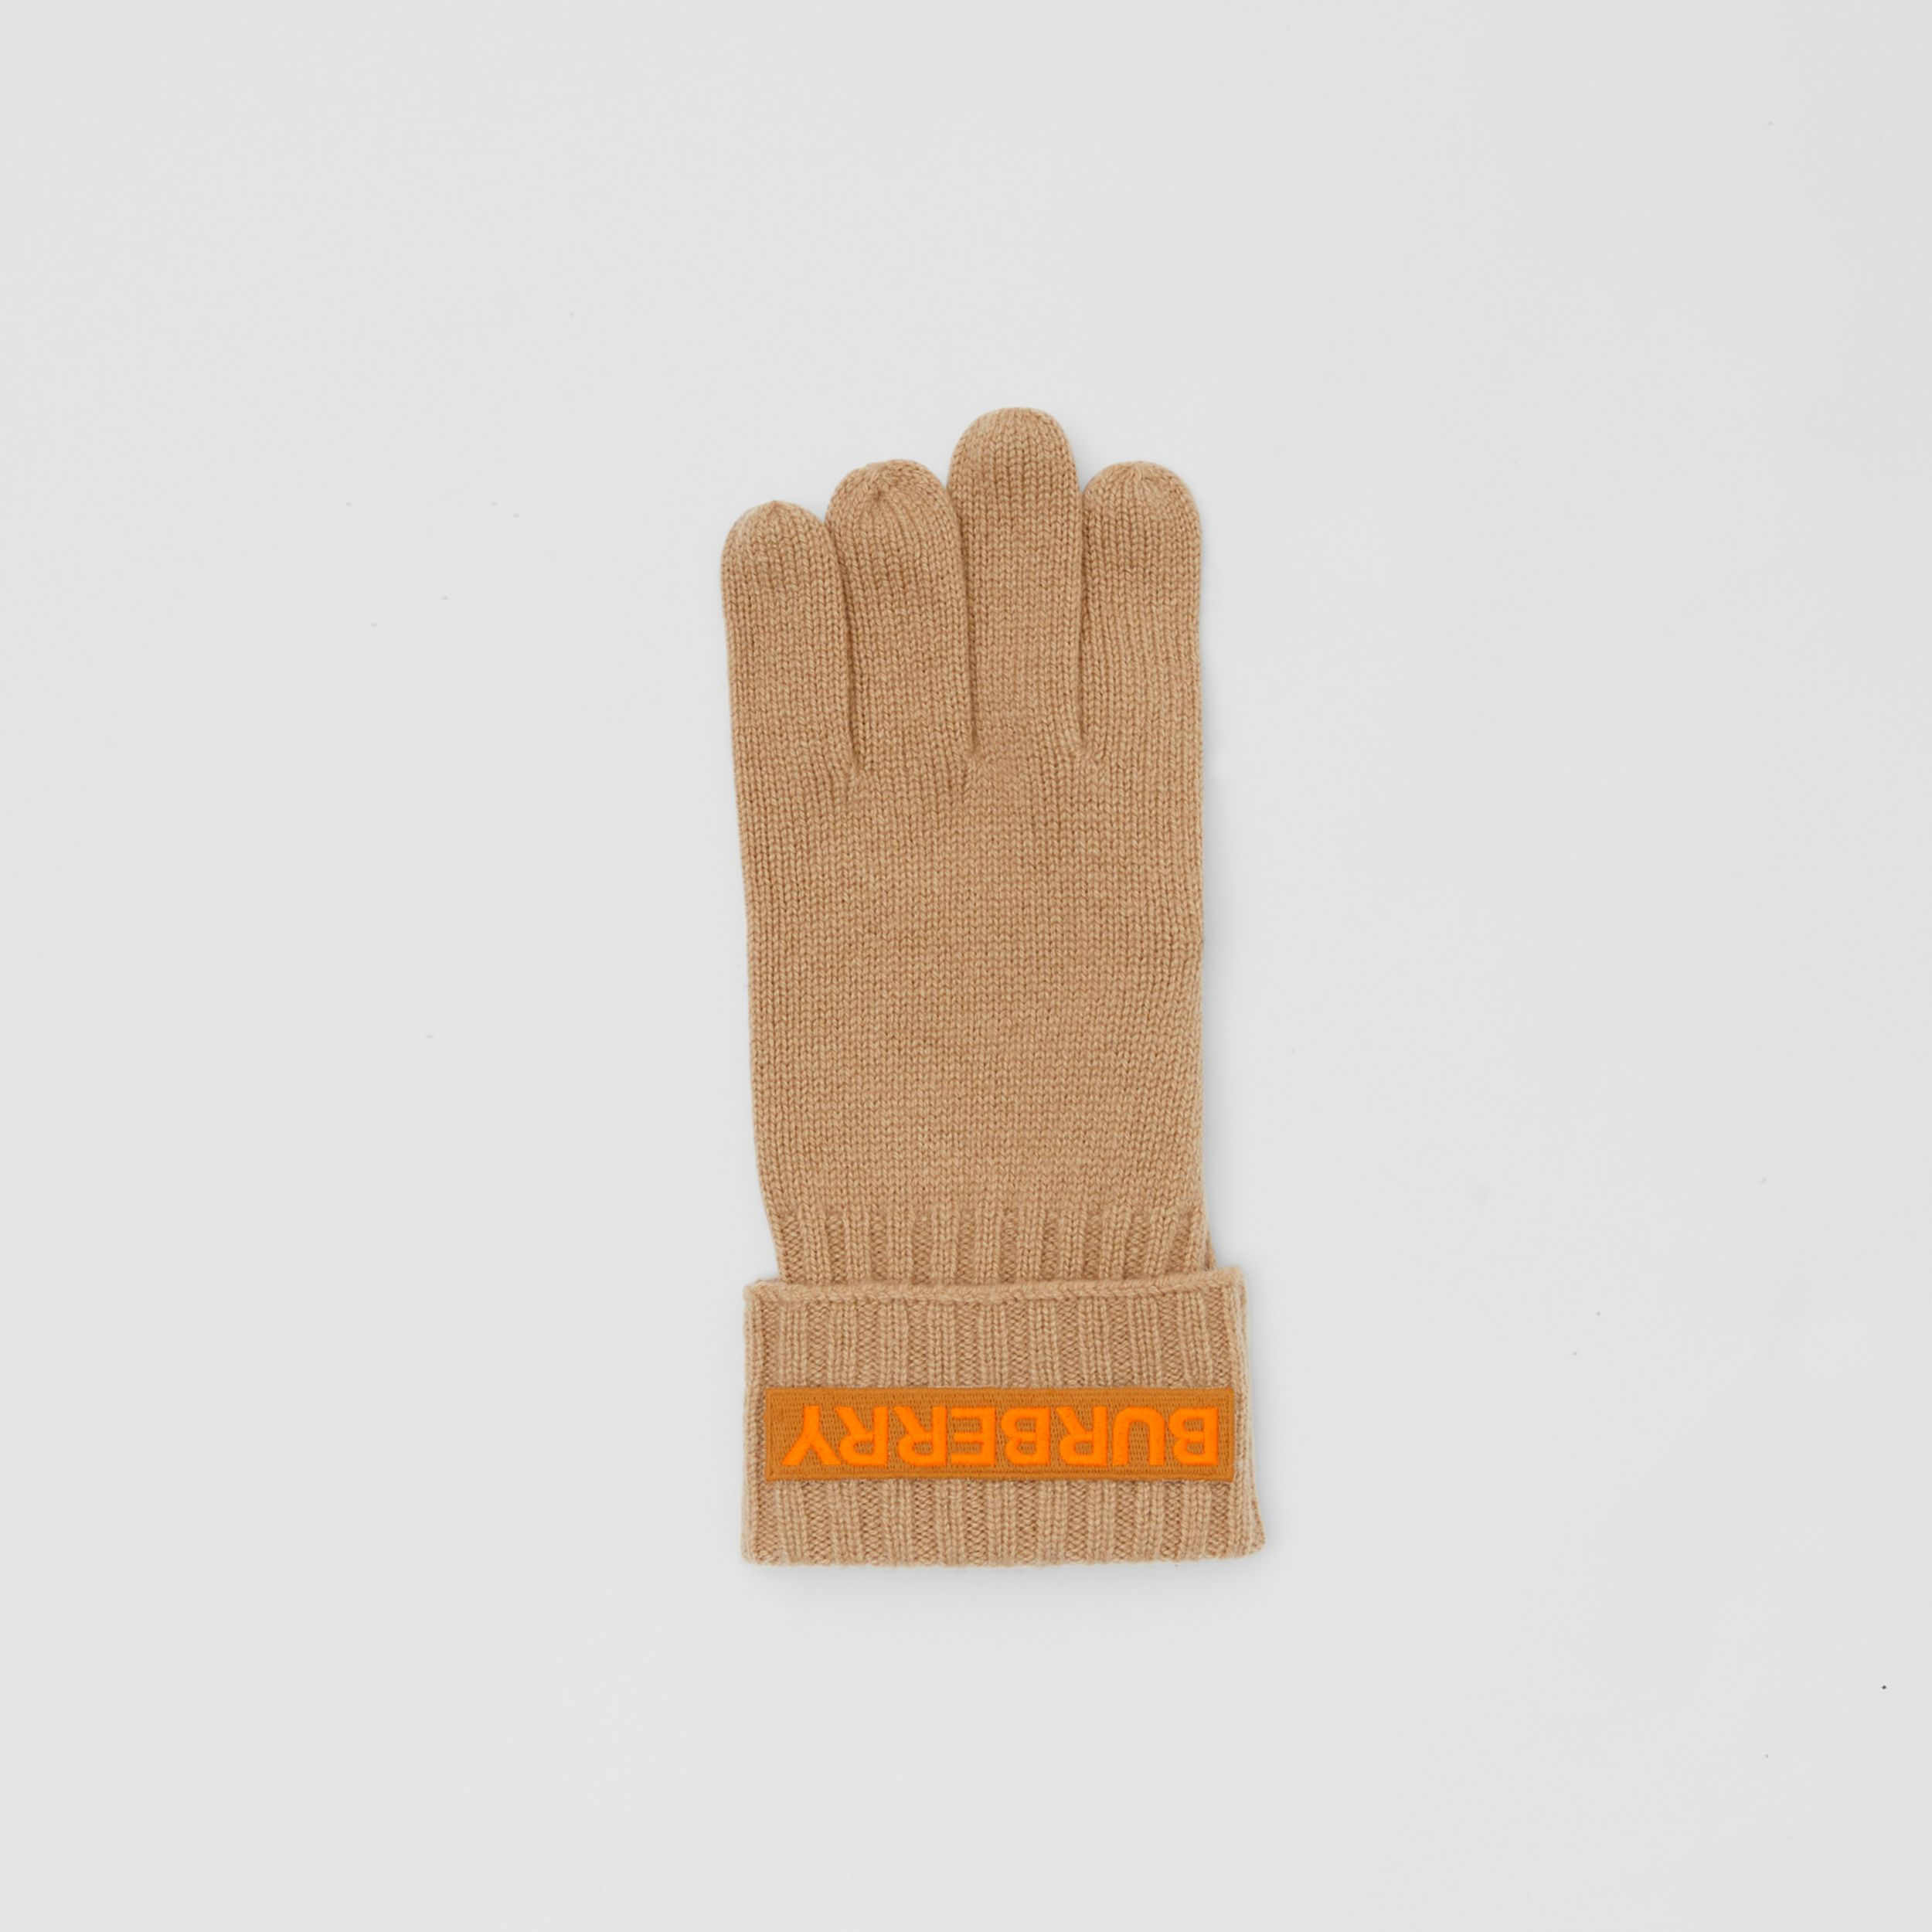 Kingdom and Logo Appliqué Cashmere Gloves in Archive Beige | Burberry - 3